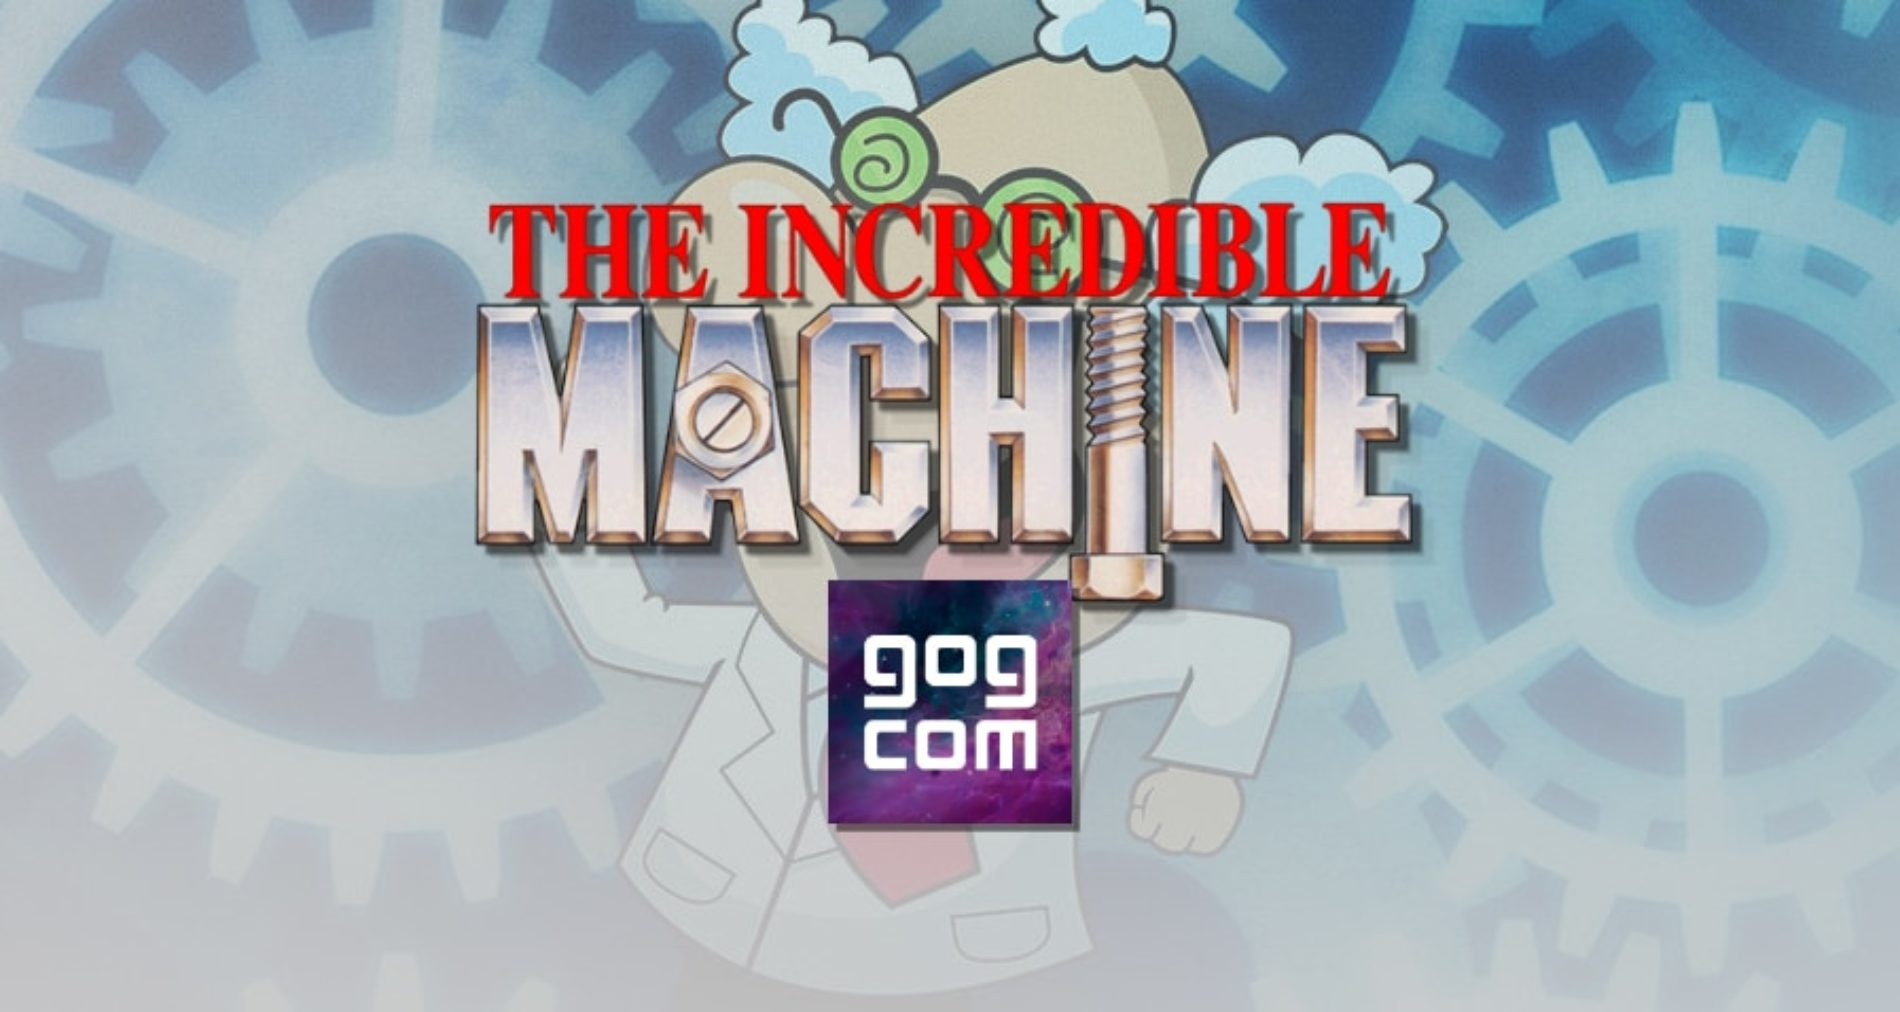 The Incredible Machine (T.I.M)